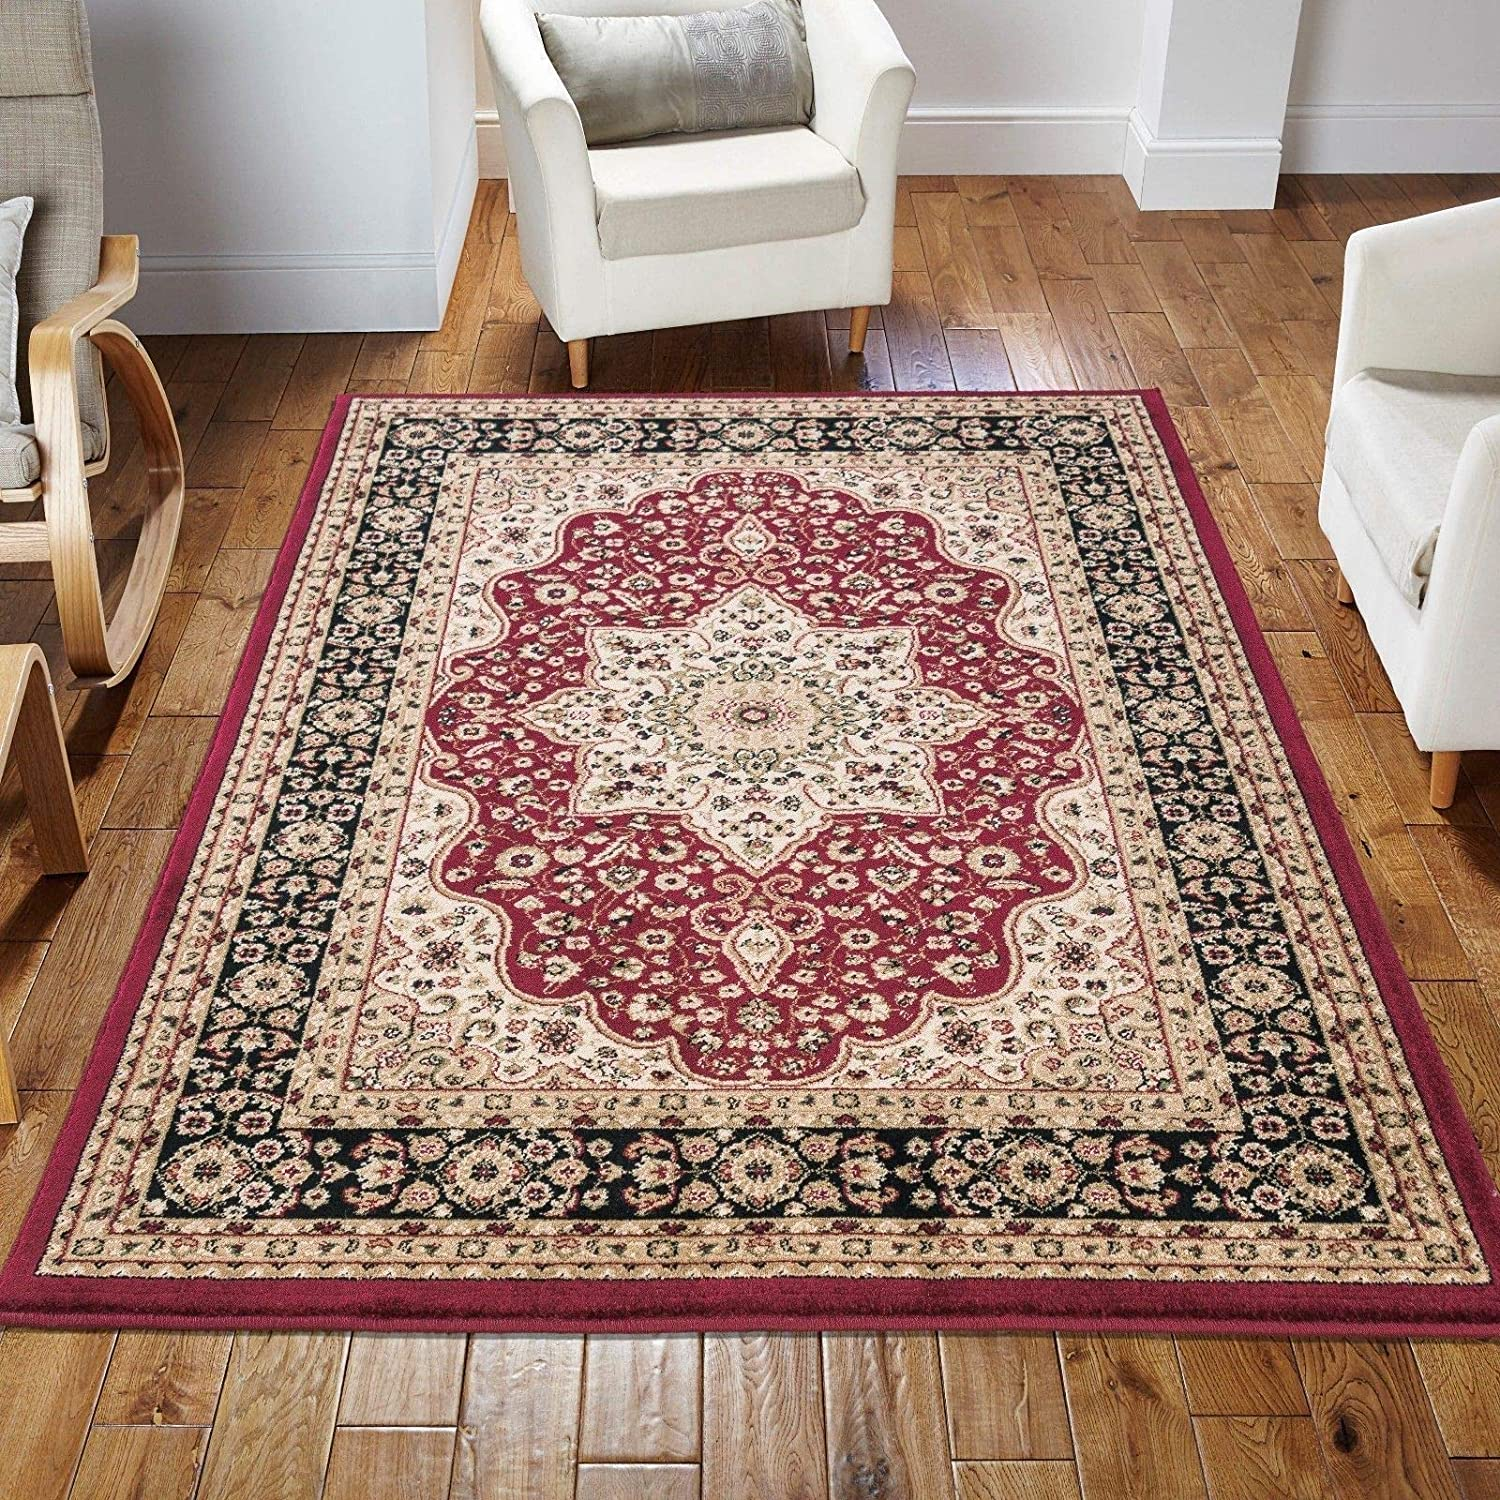 TOP Marques Collectibles Teppich, klassisch, weich, dick, florales Muster, rot, 240cm x 320cm